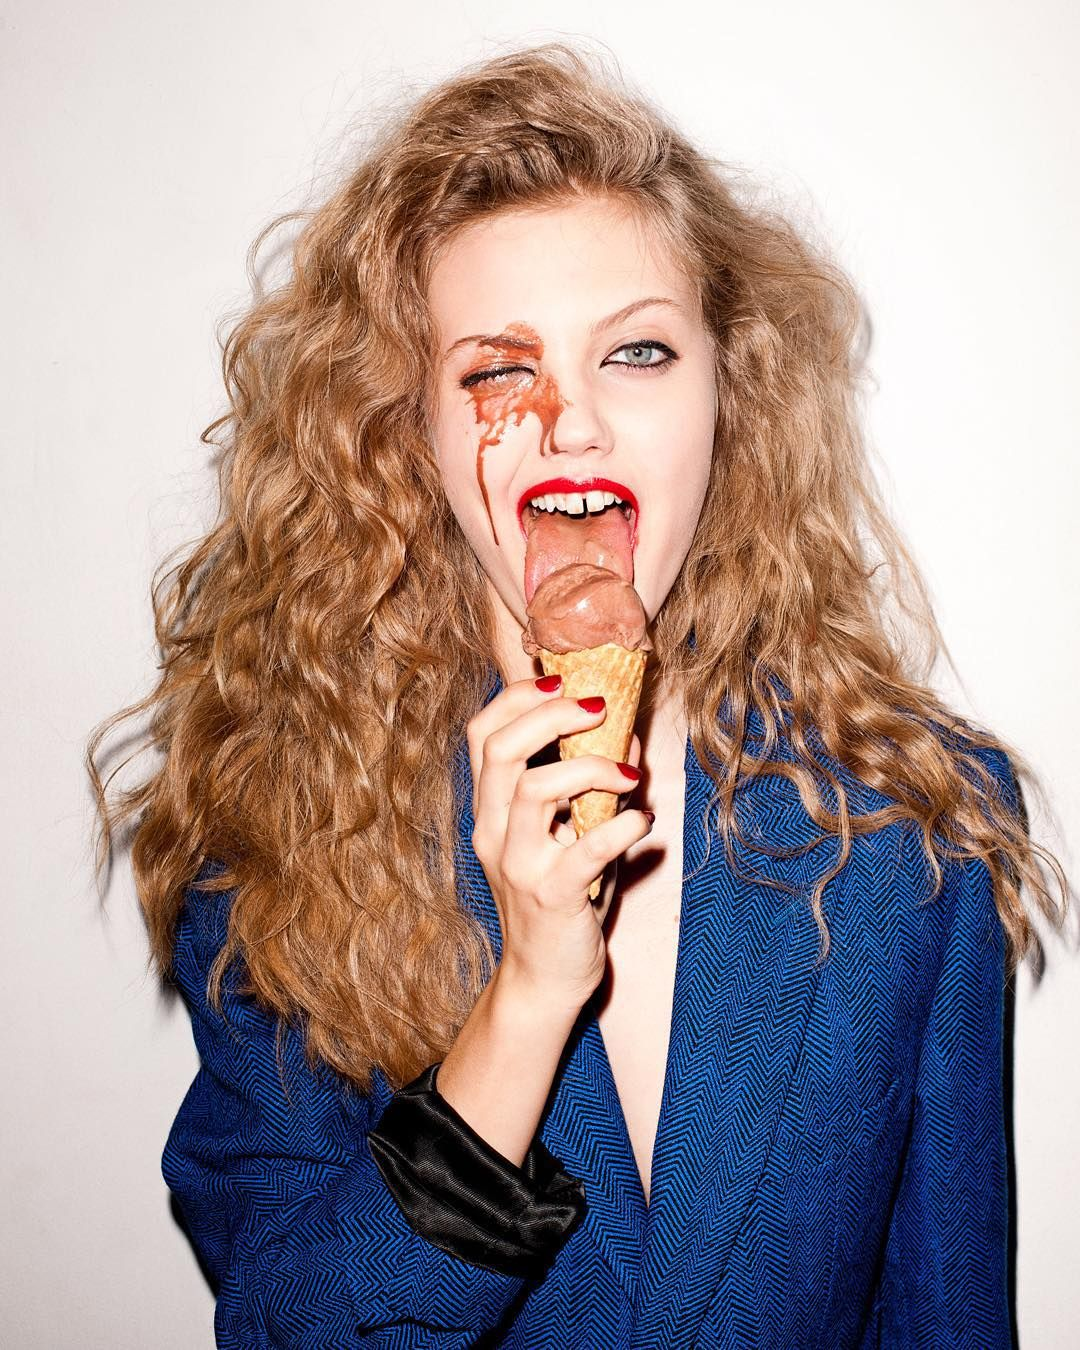 A Sneak K Inside Terryrichardson S First Full Career Monograph From Rizzolibooks By Crfashionbook